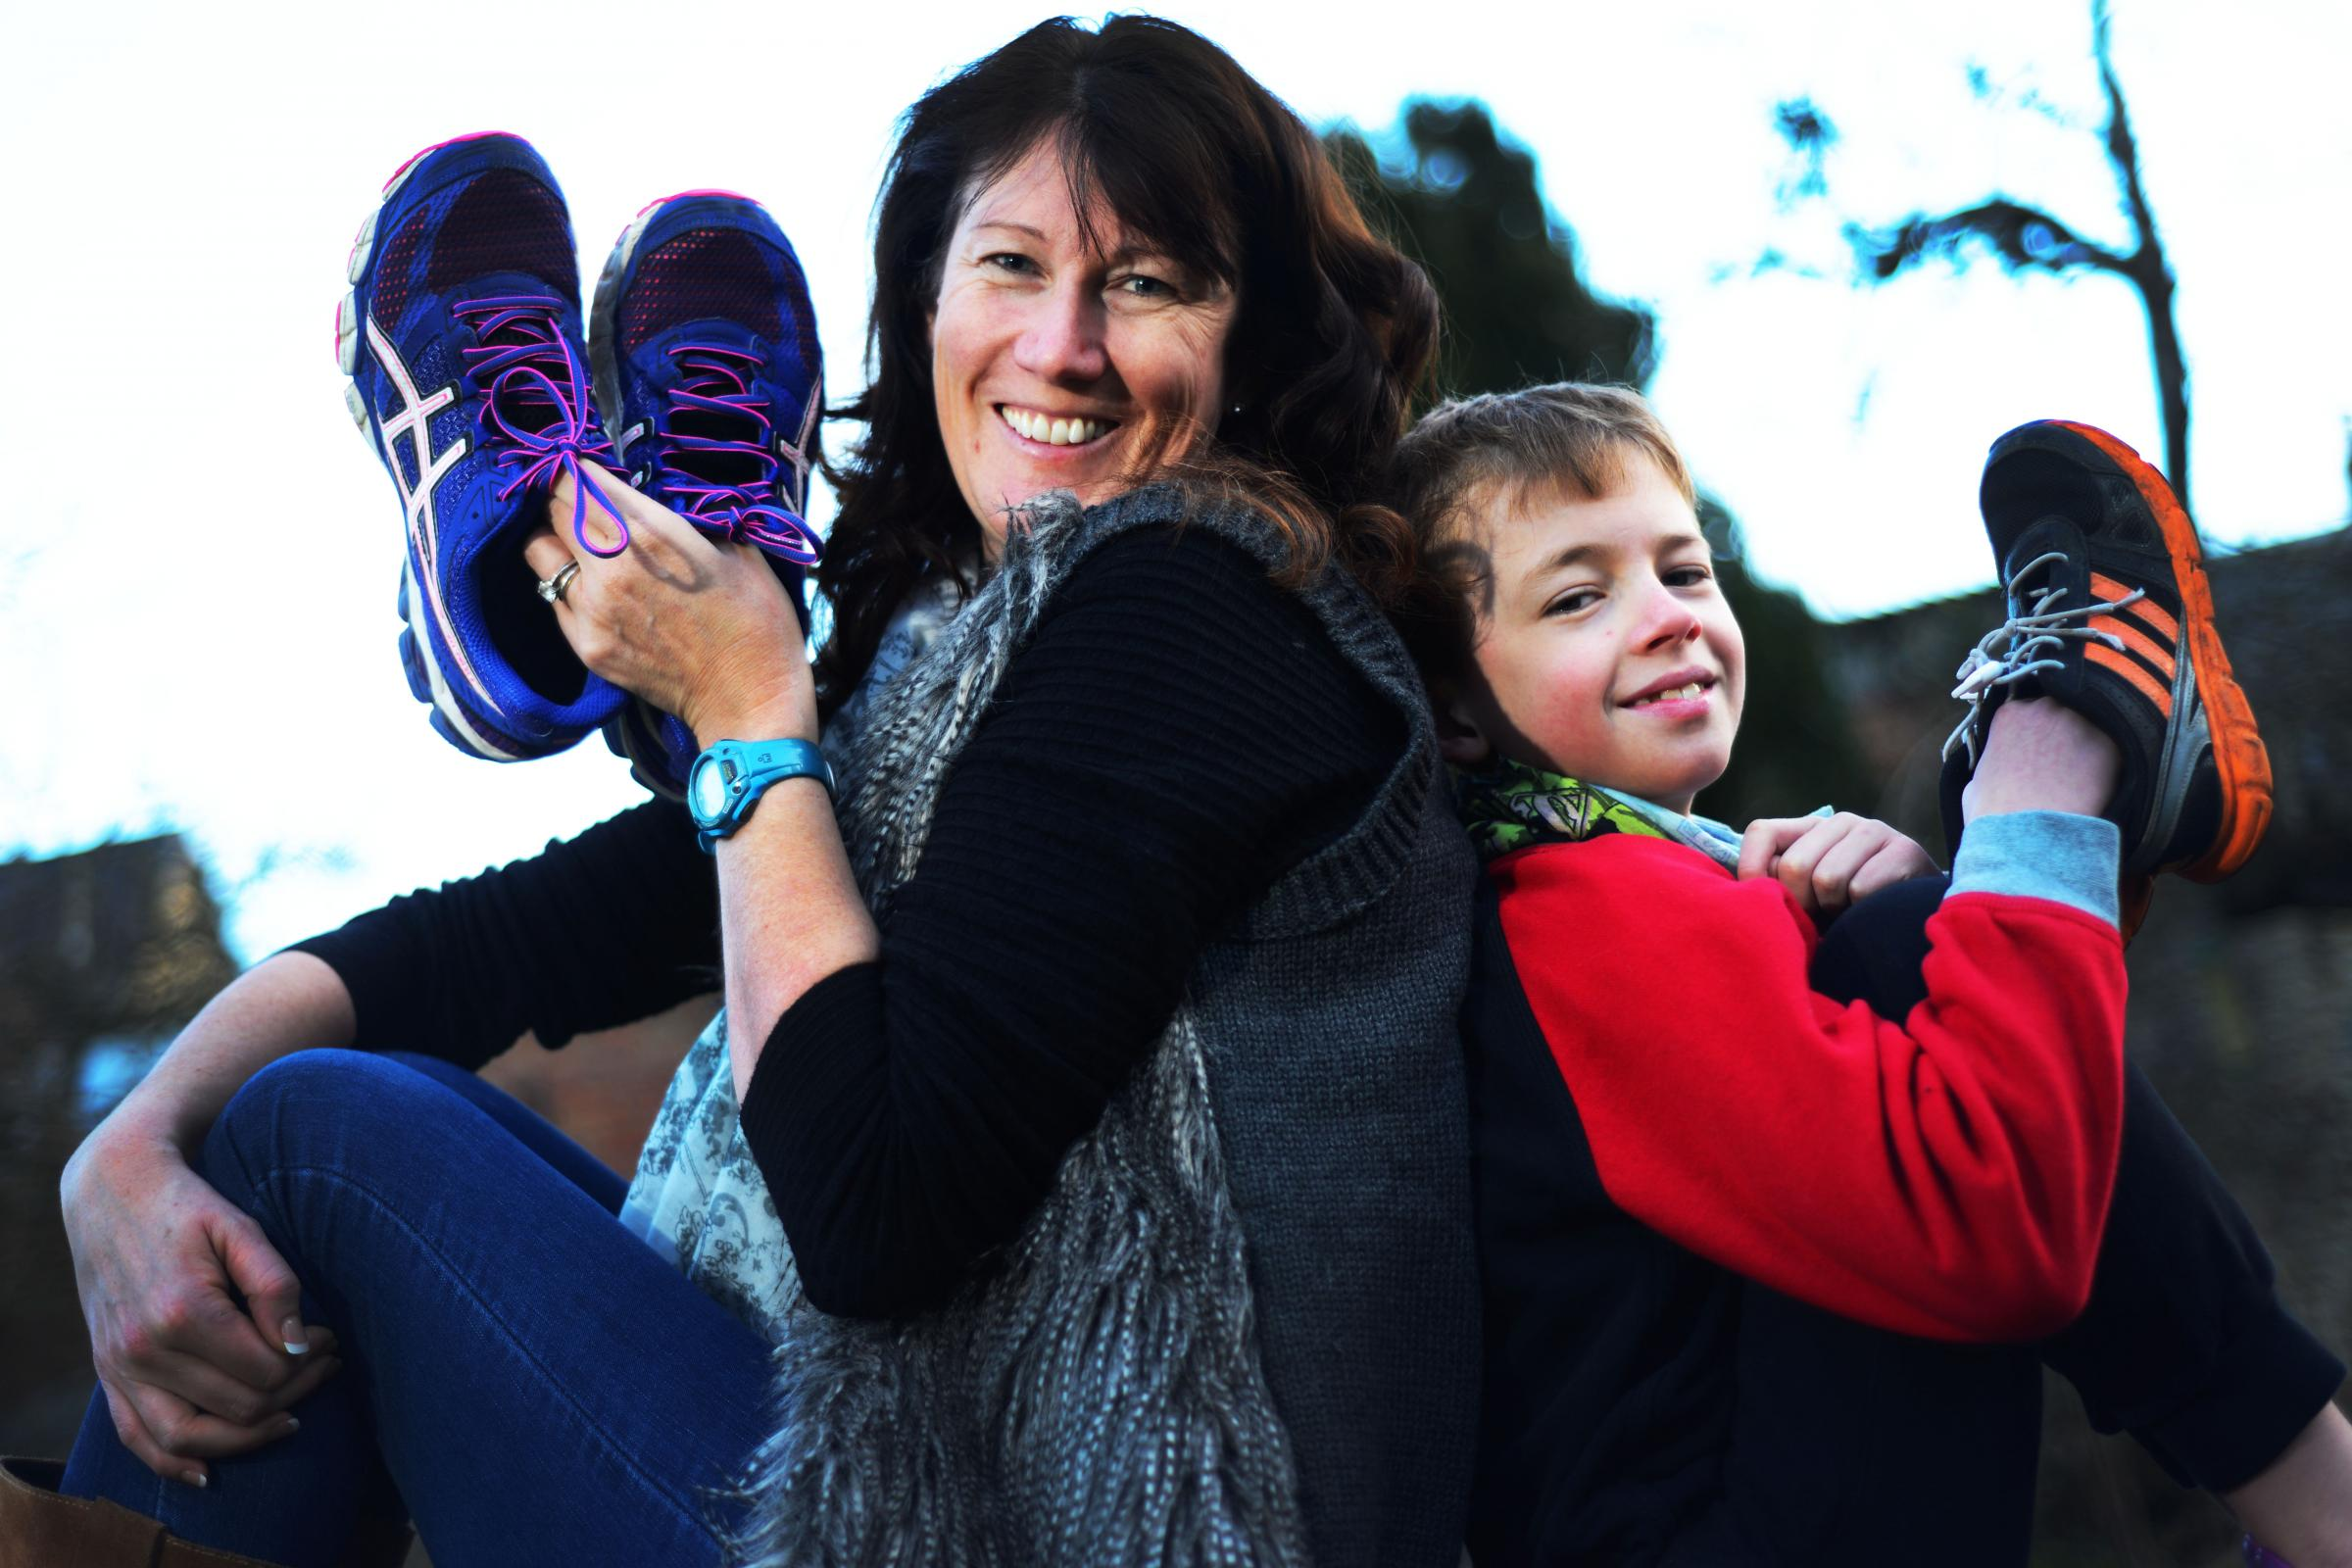 On your marks: Cheryl Davis is running the OX5 as a thank you for her son Miles' treatment